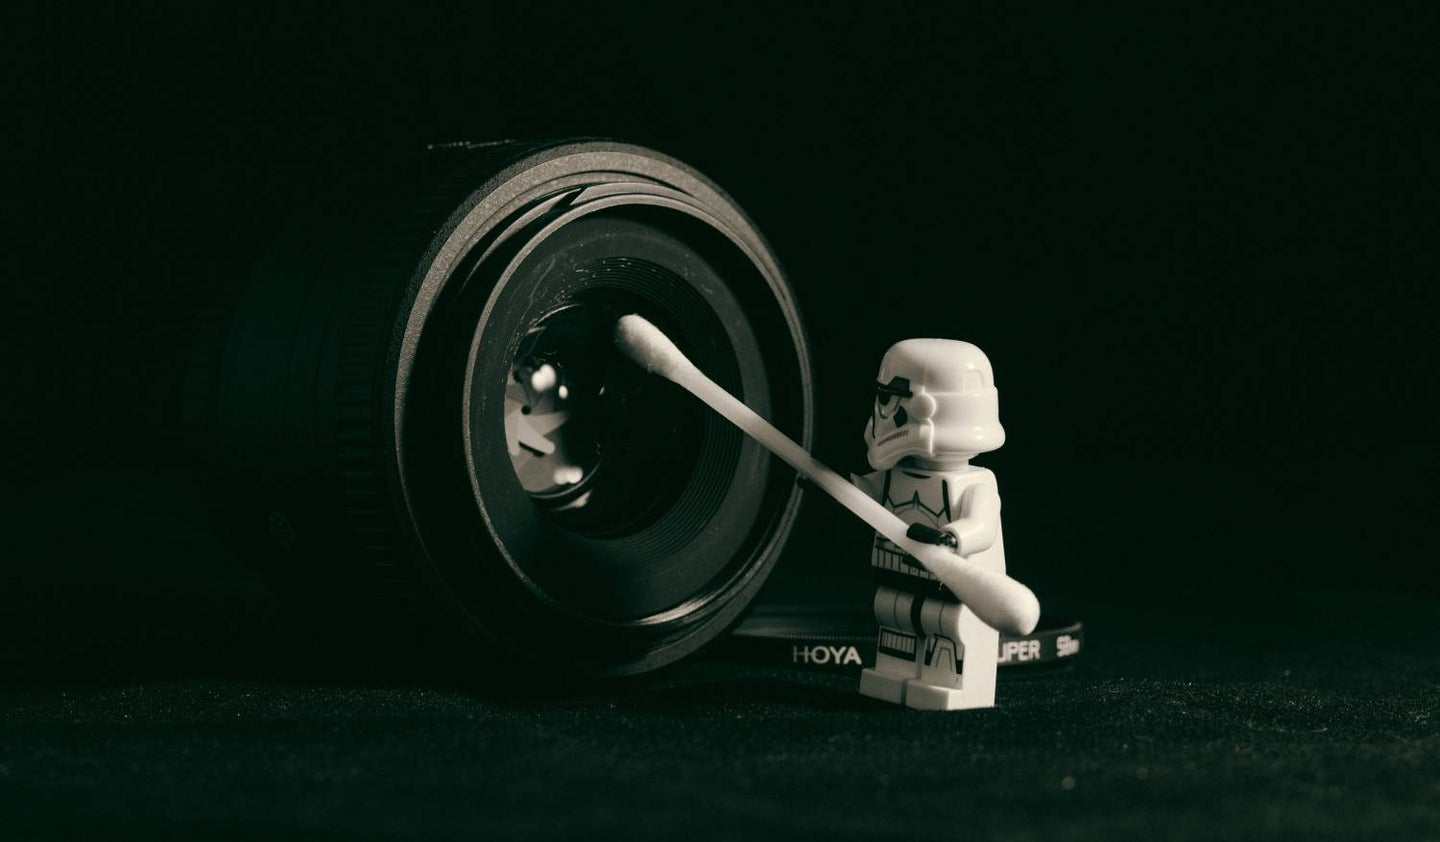 Star Wars Lego figurine cleaning camera lens